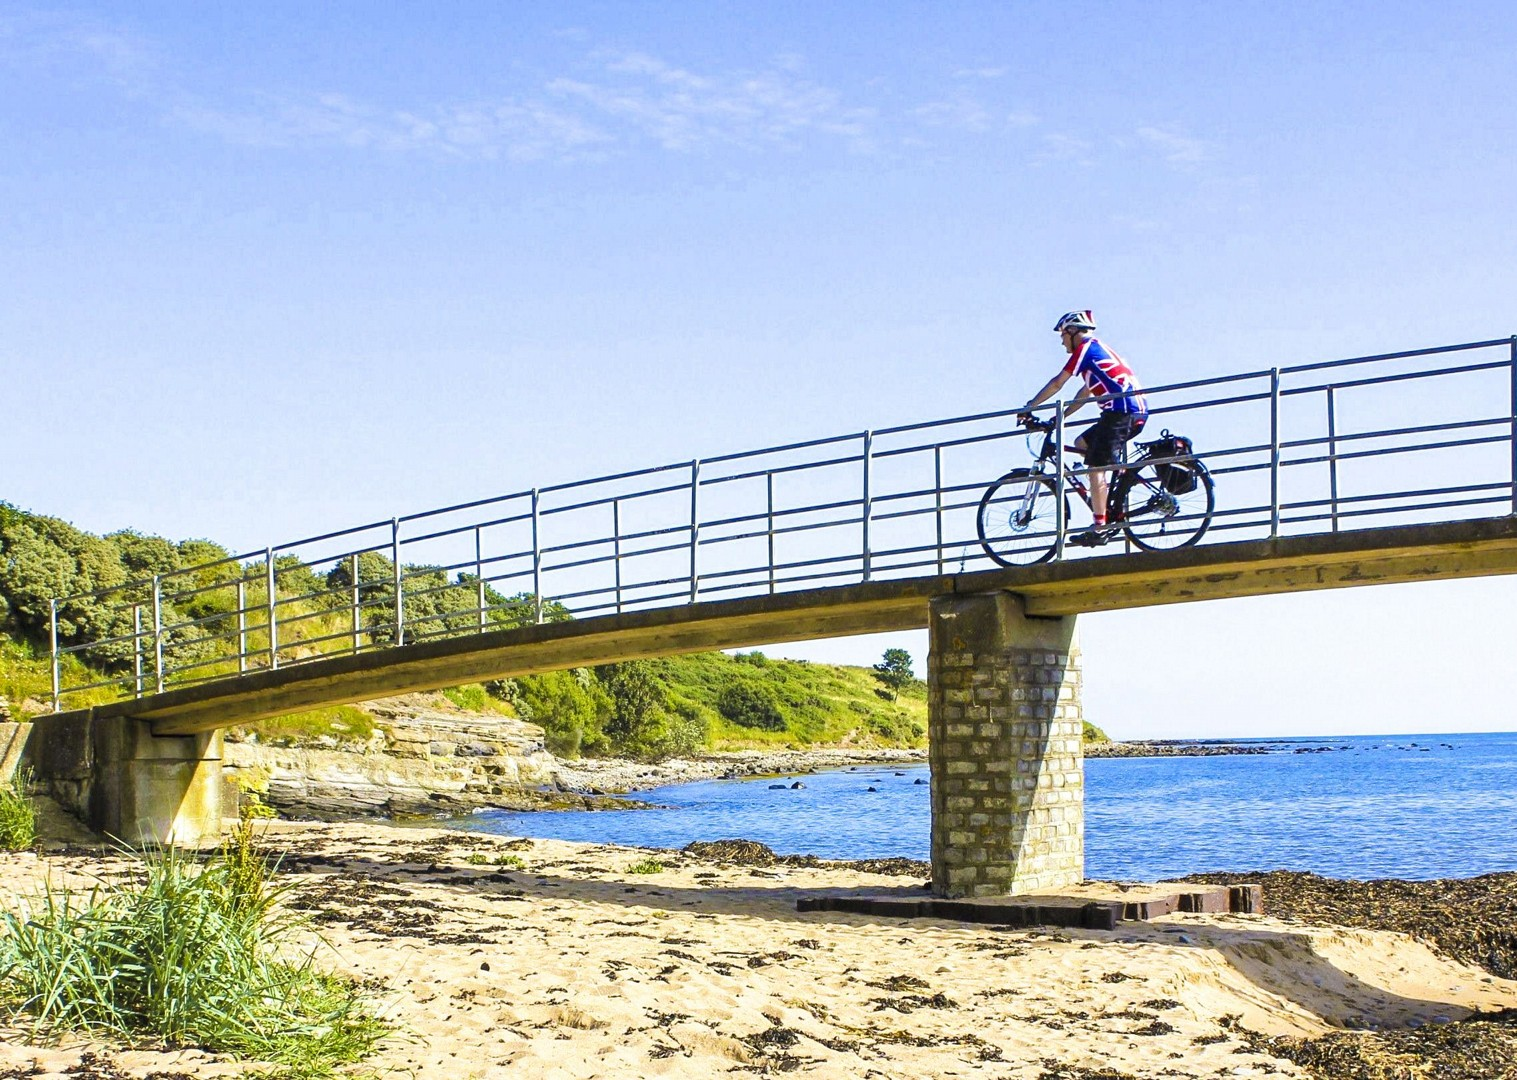 northumberland-coast-cycling-tour-alnmouth-self-guided-leisure.jpg - UK - Northumberland - Alnmouth - Self-Guided Leisure Cycling Holiday - Leisure Cycling